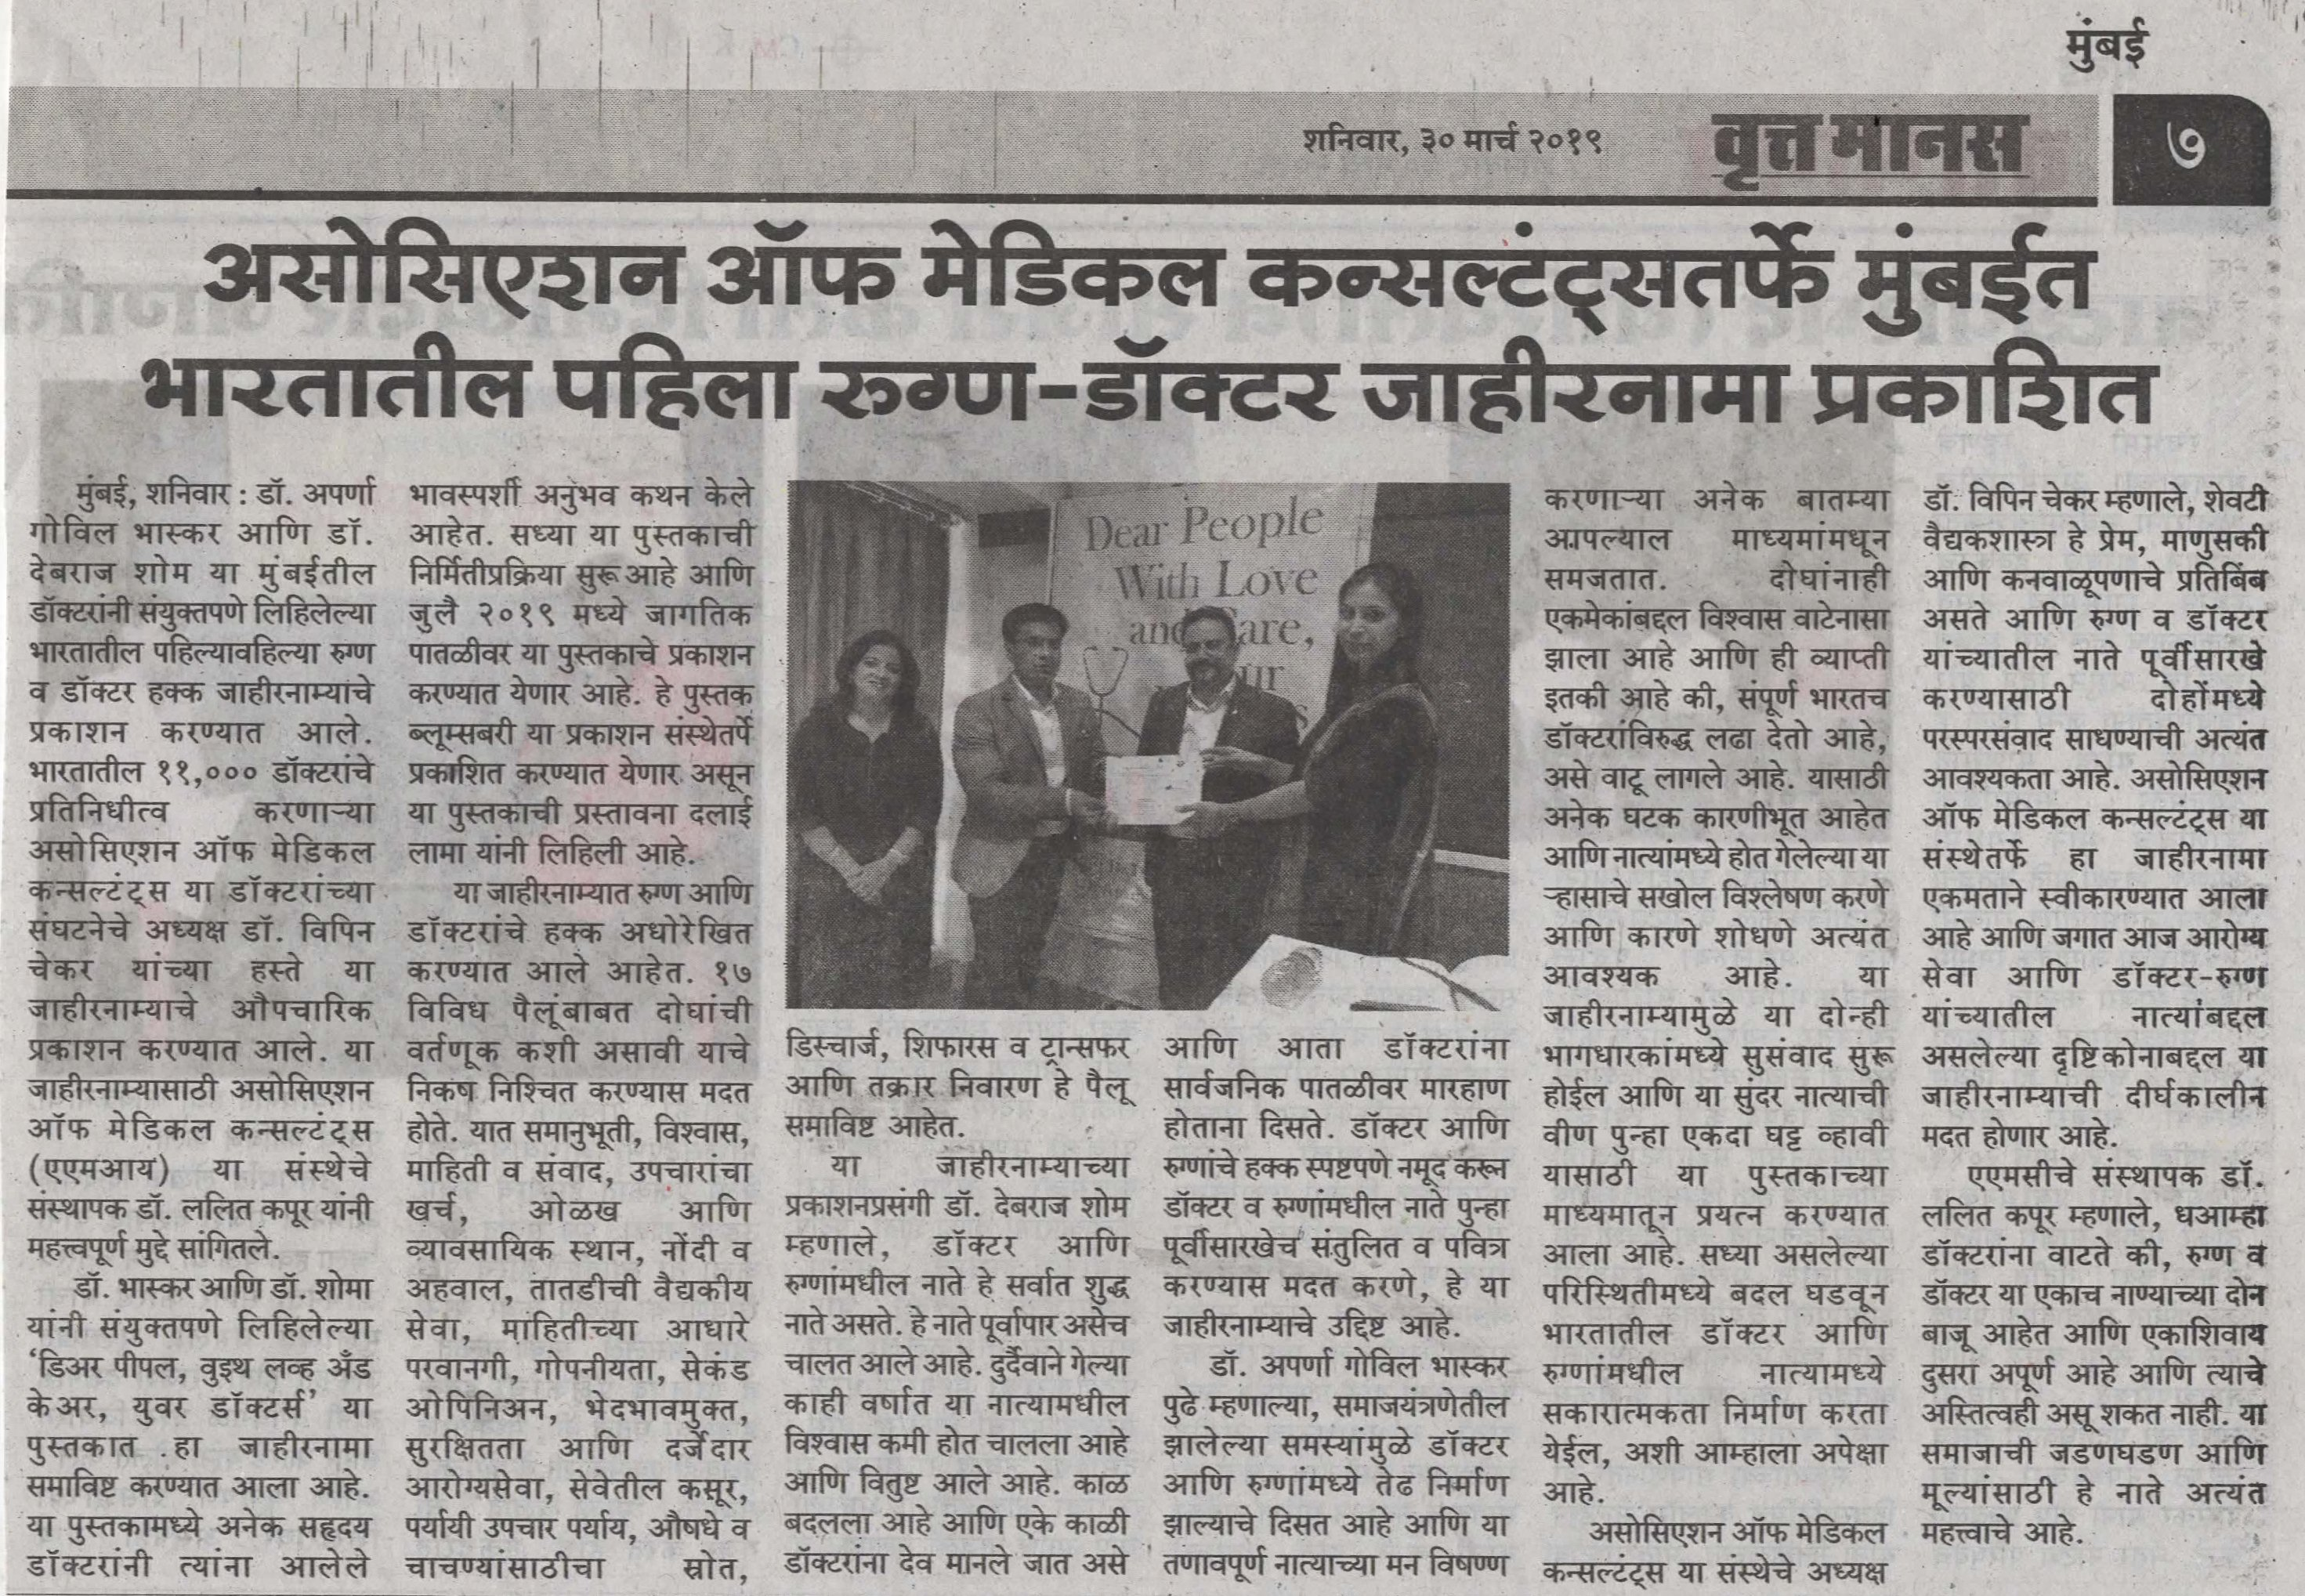 """India's First """"Patient-Doctor Manifesto"""" Released In Mumbai By Association Of Medical Consultants - Vruttamanas"""